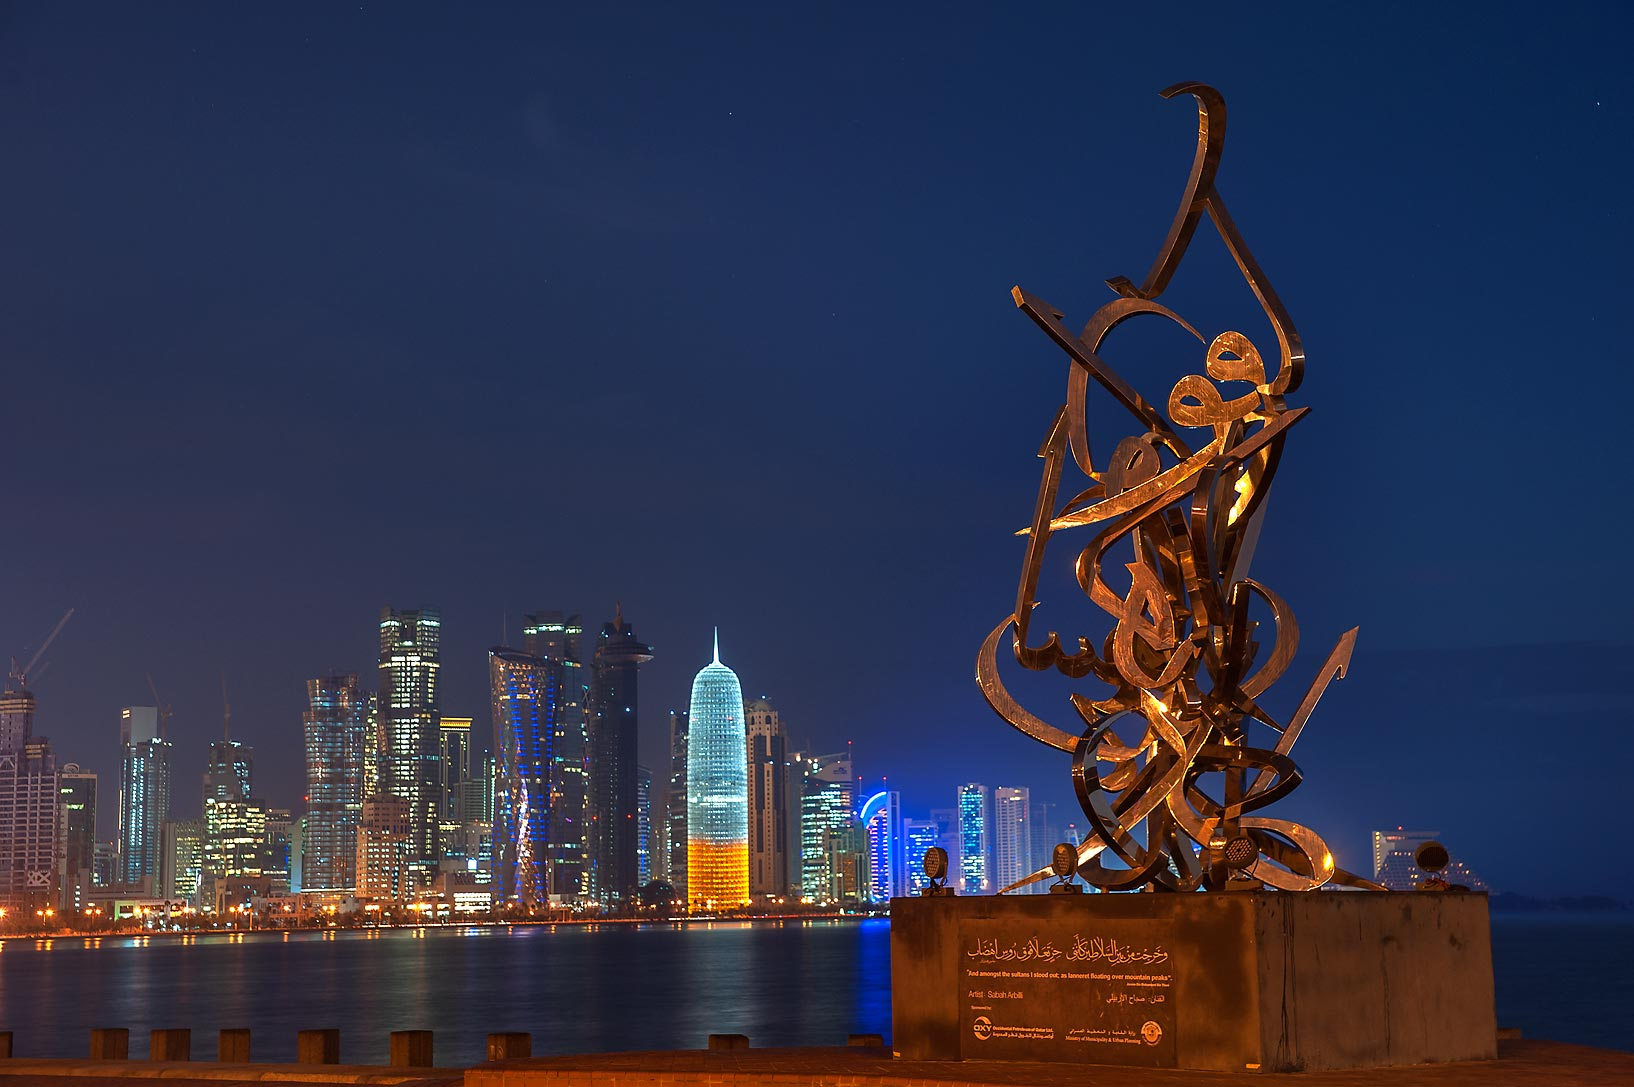 Calligraphy Sculpture by Sabah Arbilli on Corniche Promenade at morning. Doha, Qatar